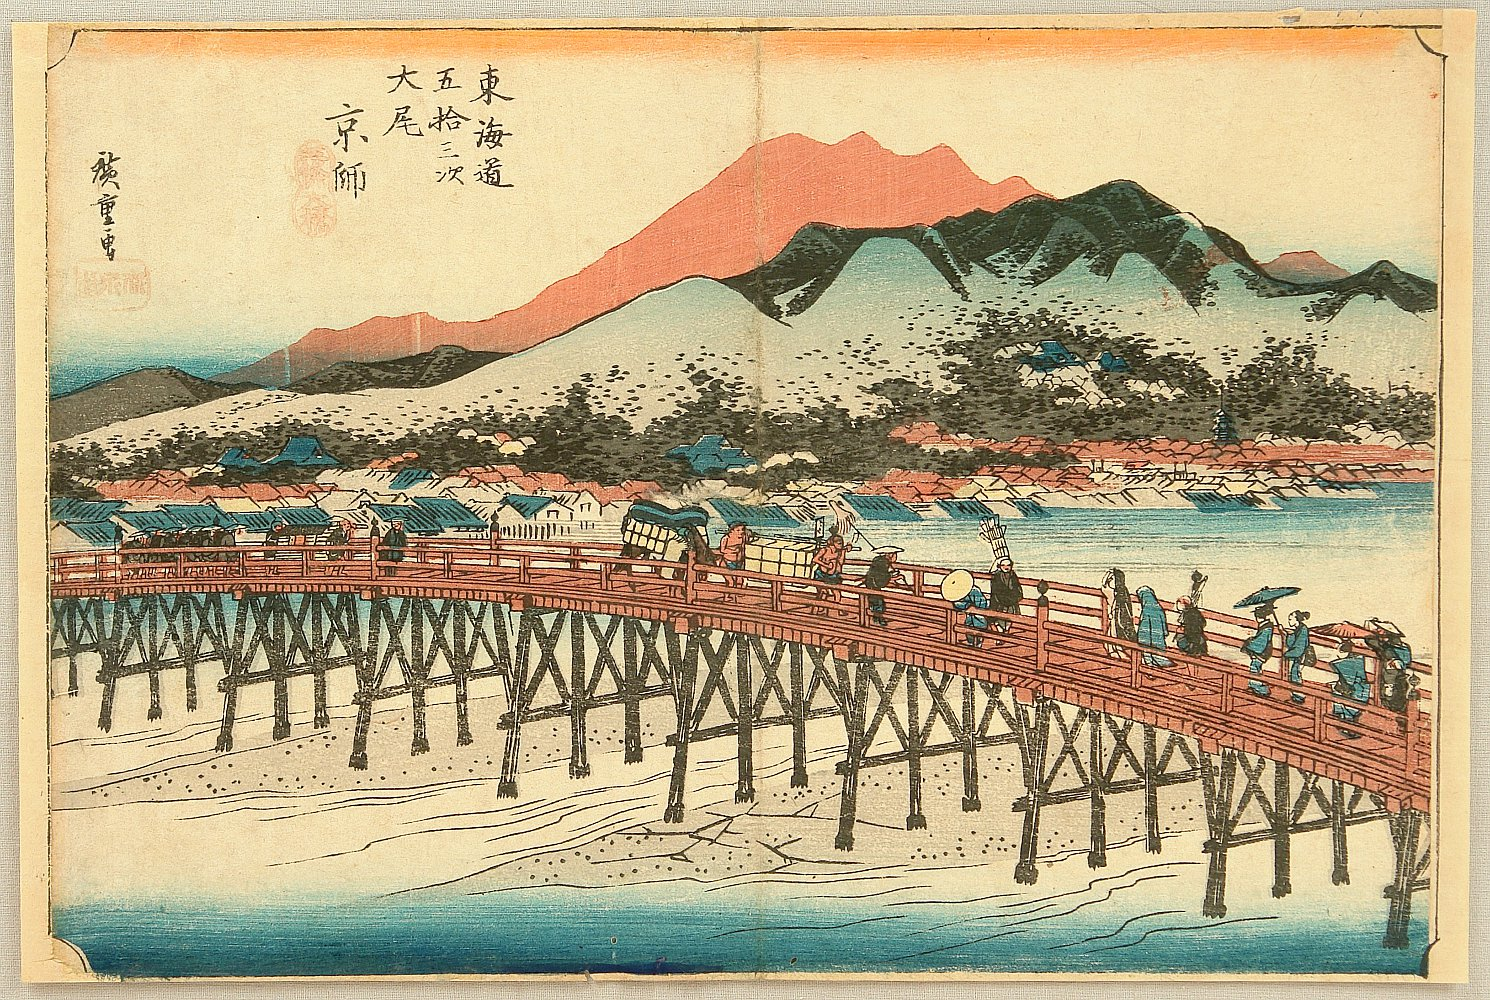 By Ando Hiroshige